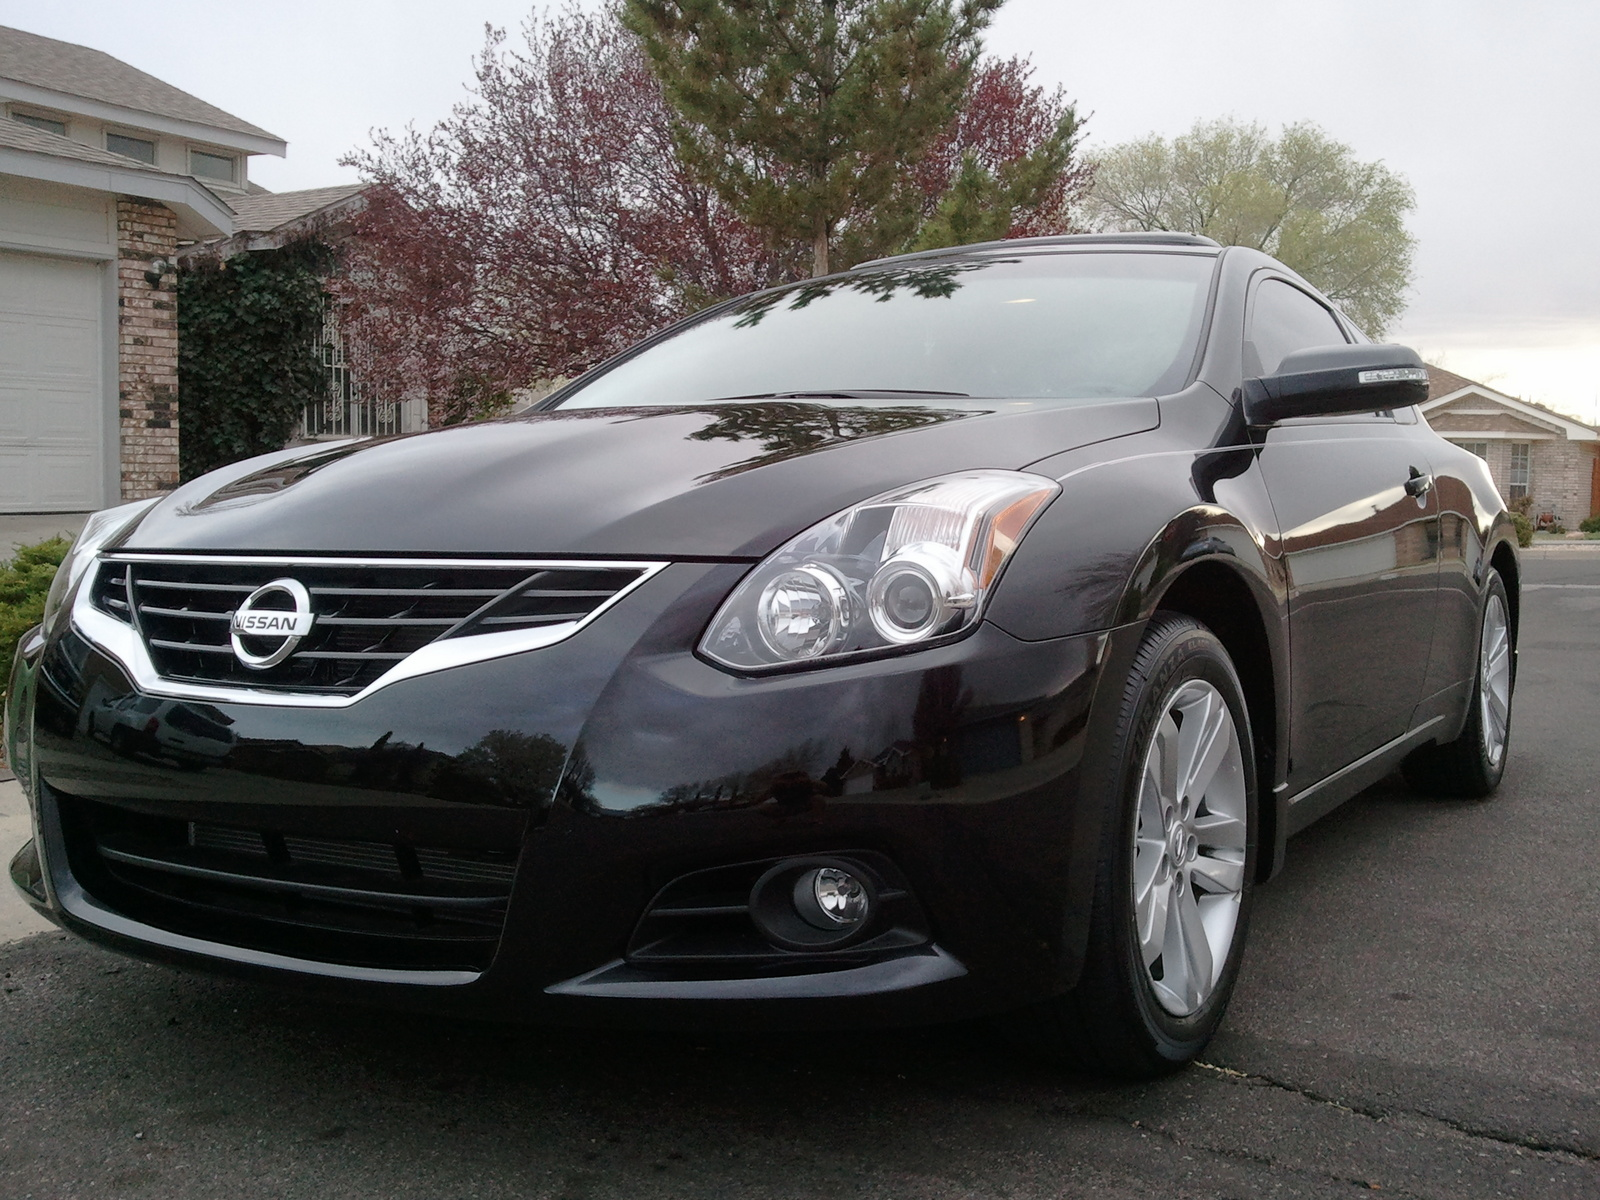 2011 nissan altima - information and photos - zombiedrive